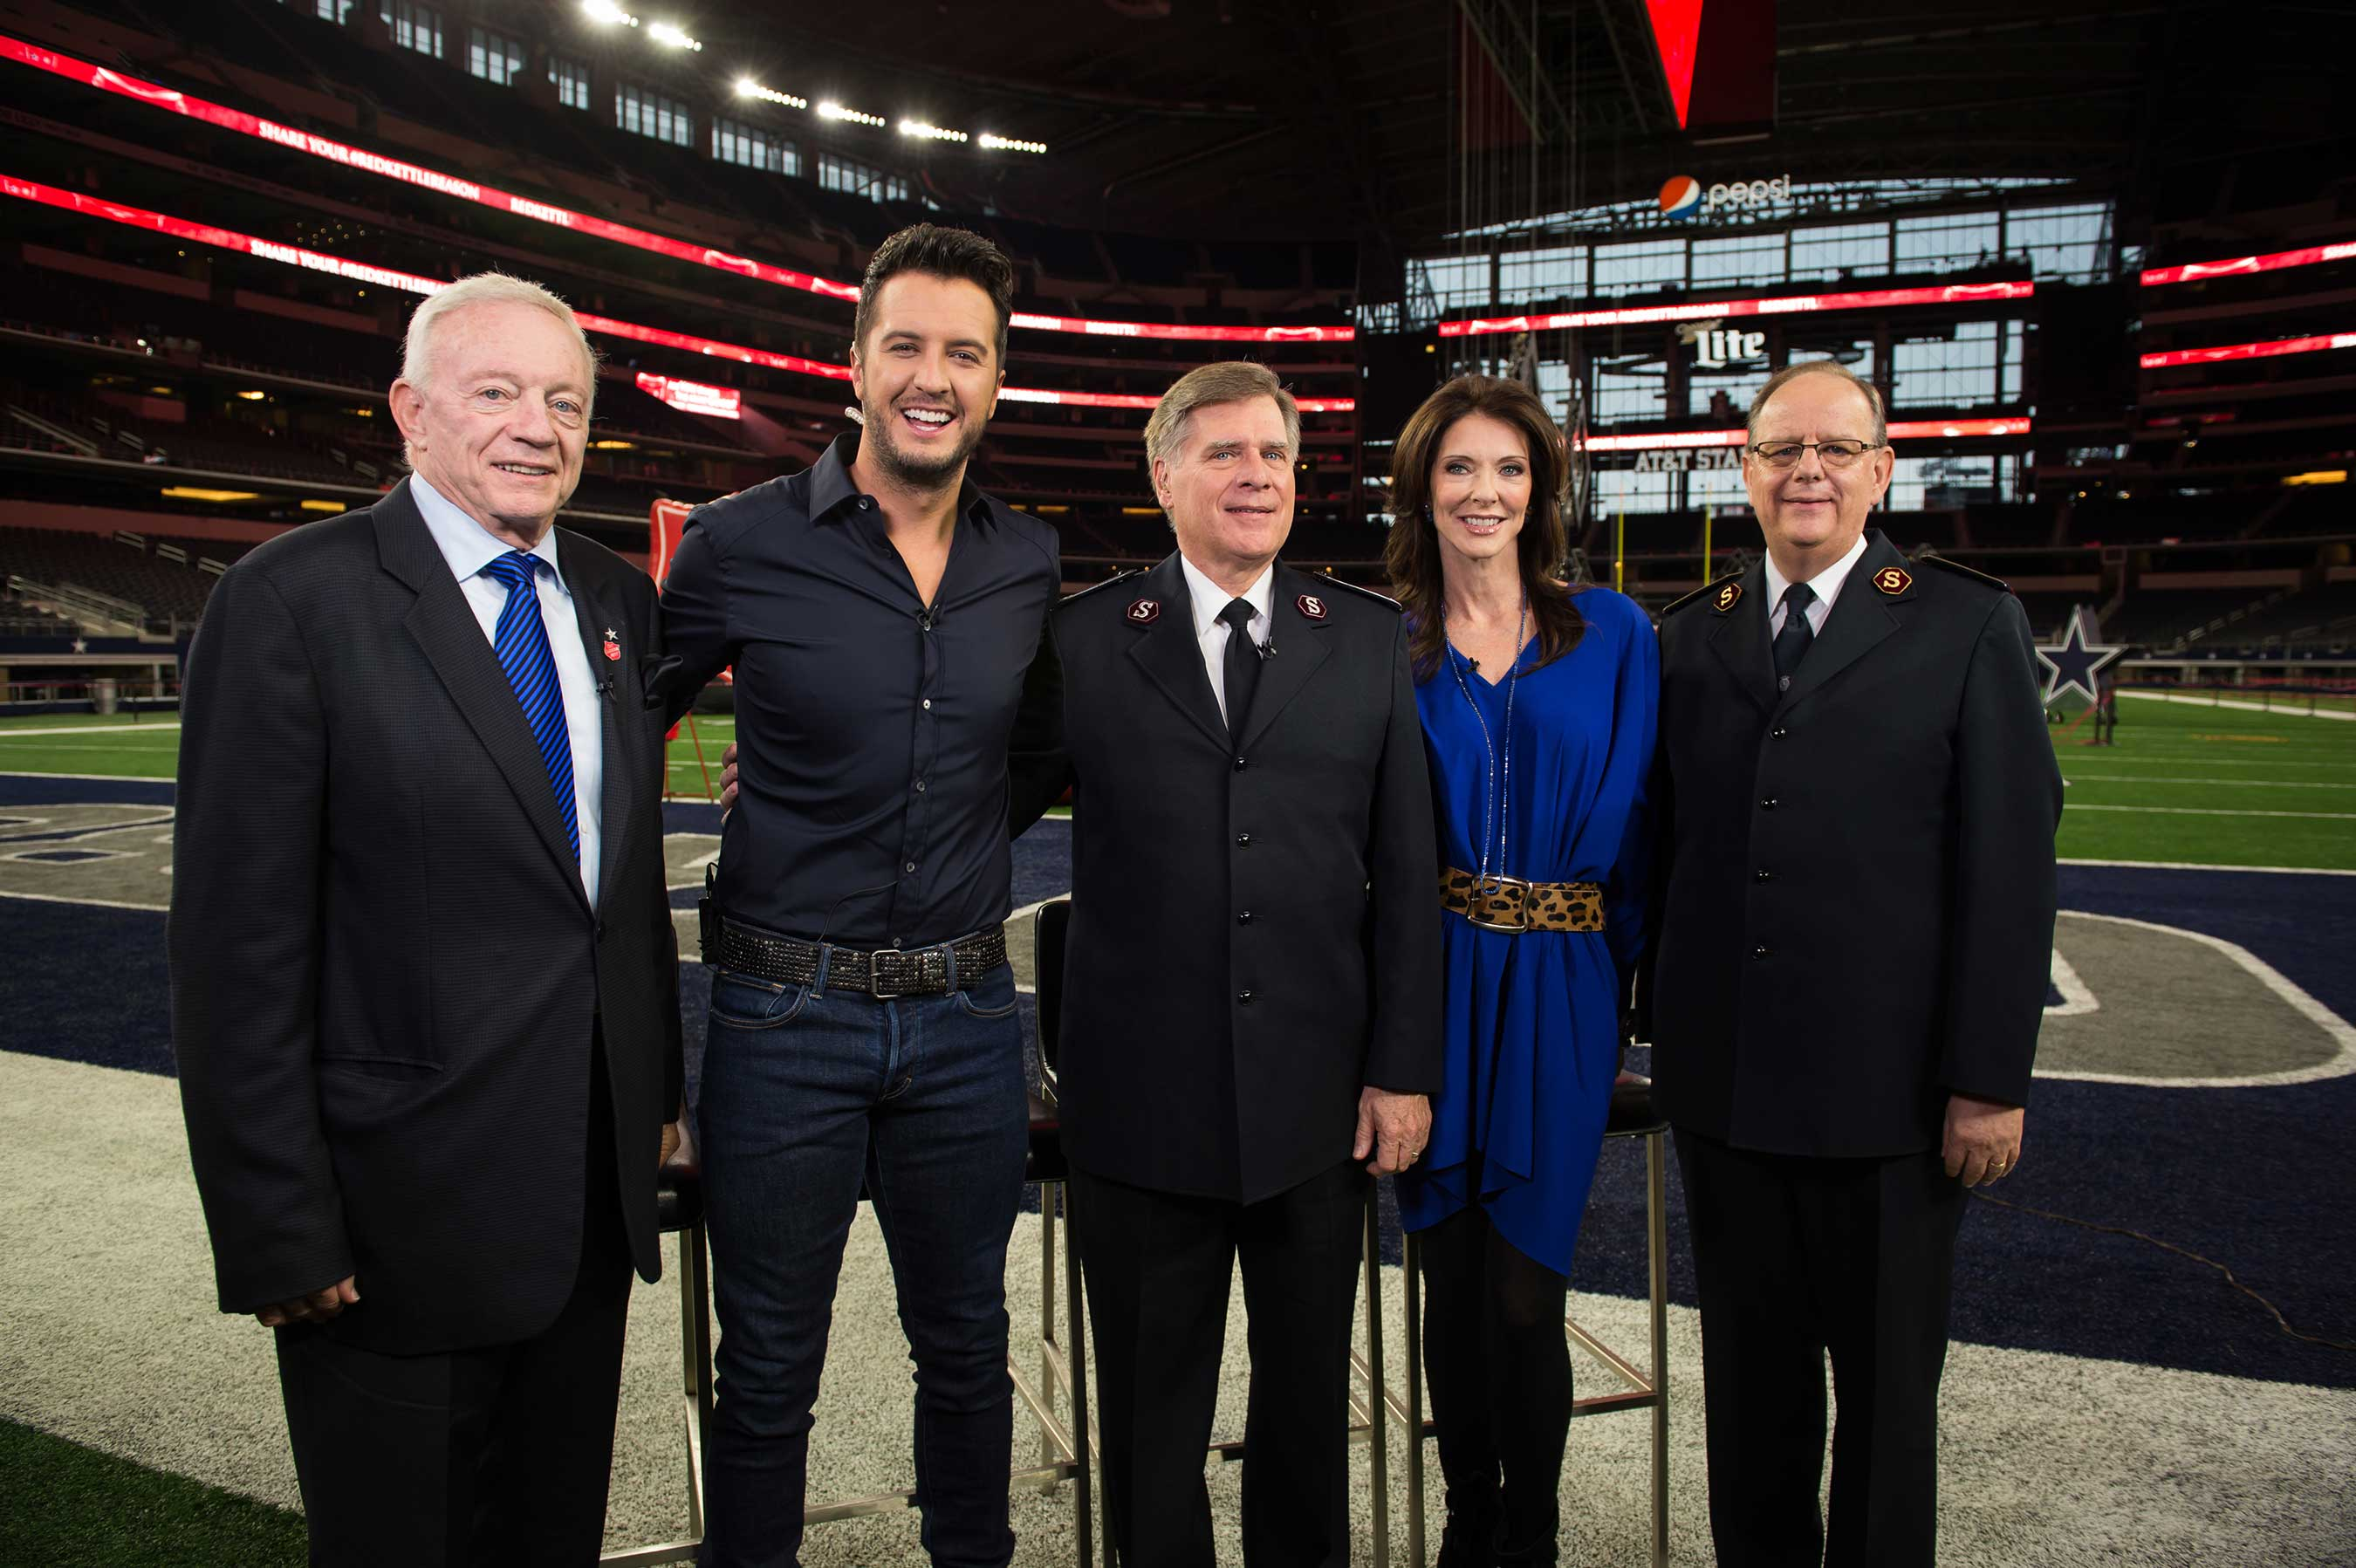 Jerry Jones, Luke Bryan, Commissioner David Jeffrey, Charlotte Jones Anderson and General André Cox at AT&T Stadium to celebrate the launch of the 125th Red Kettle Campaign.